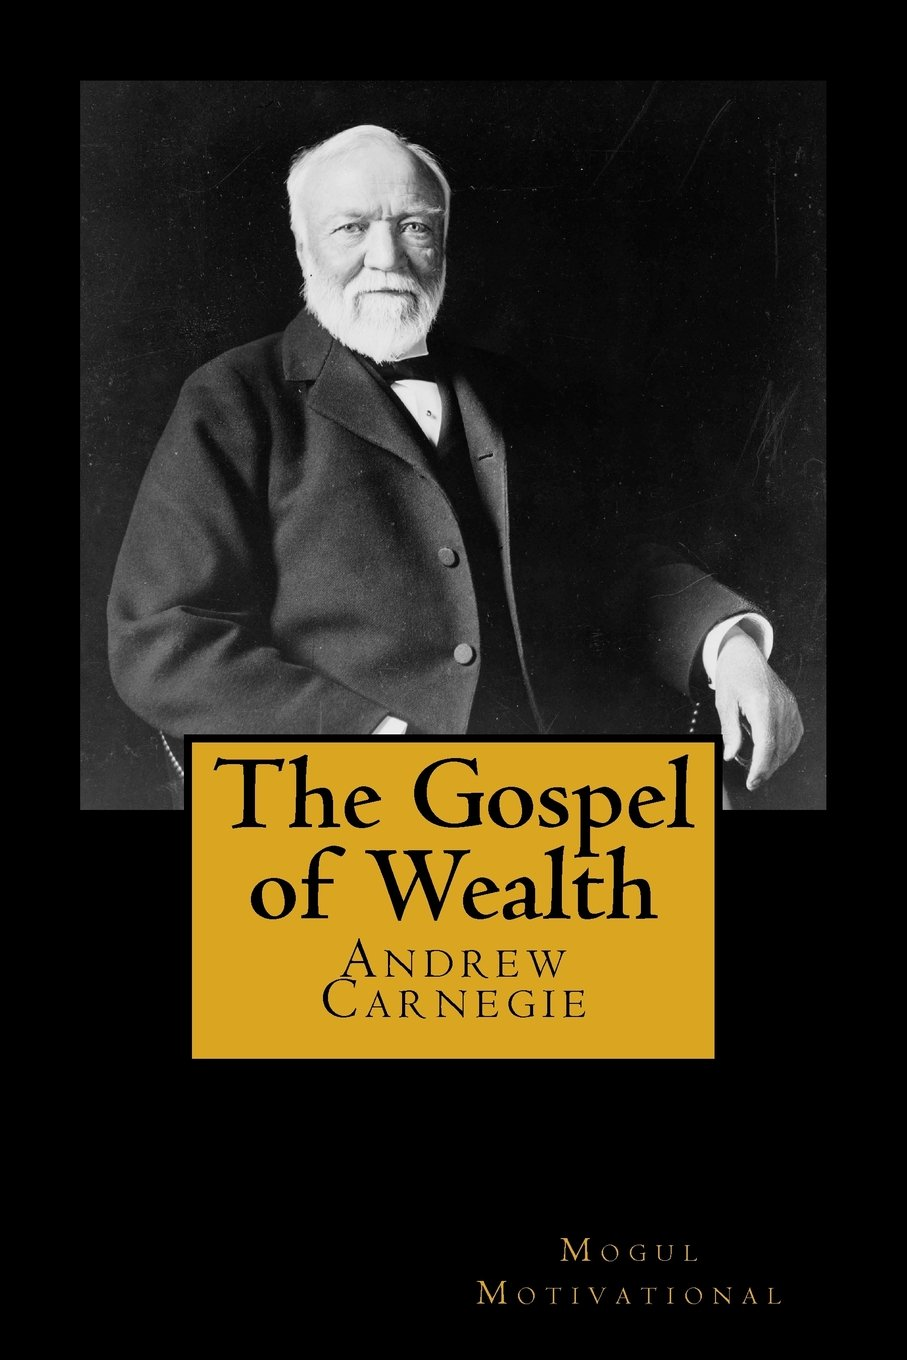 andrew carnegie essay on wealth  andrew carnegie essay on wealth